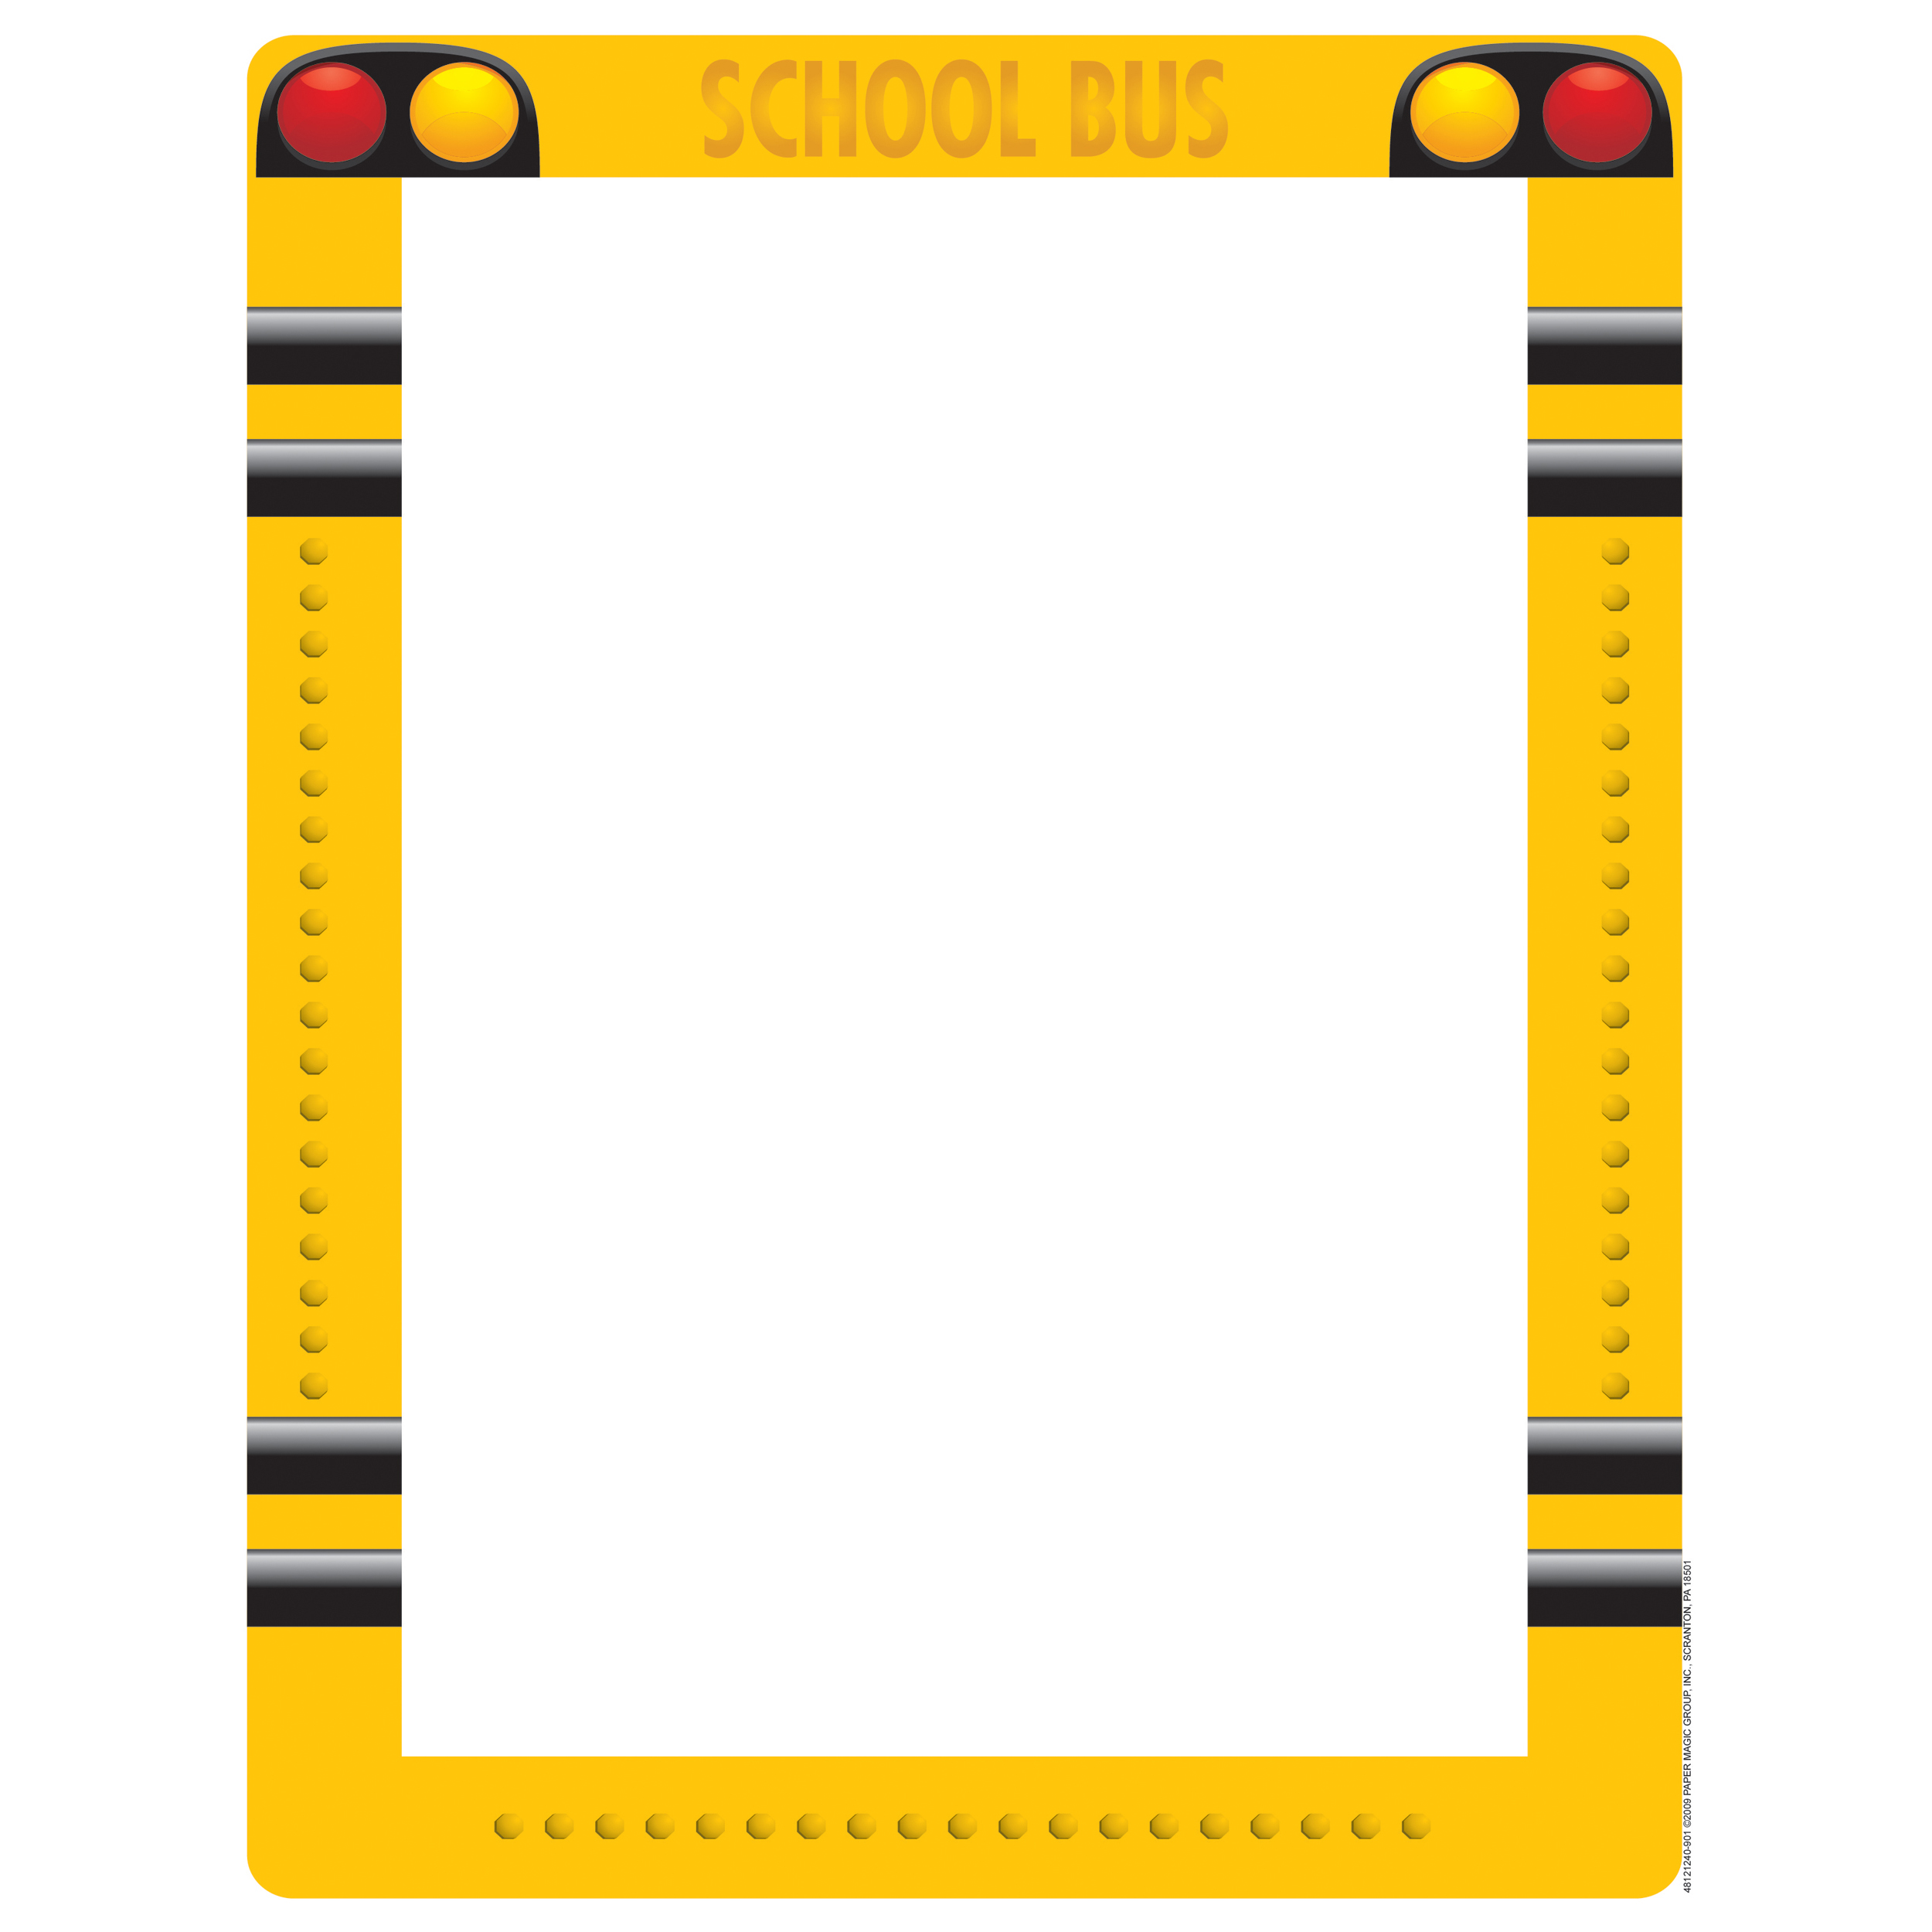 School Bus Computer Theme Paper   Eureka School